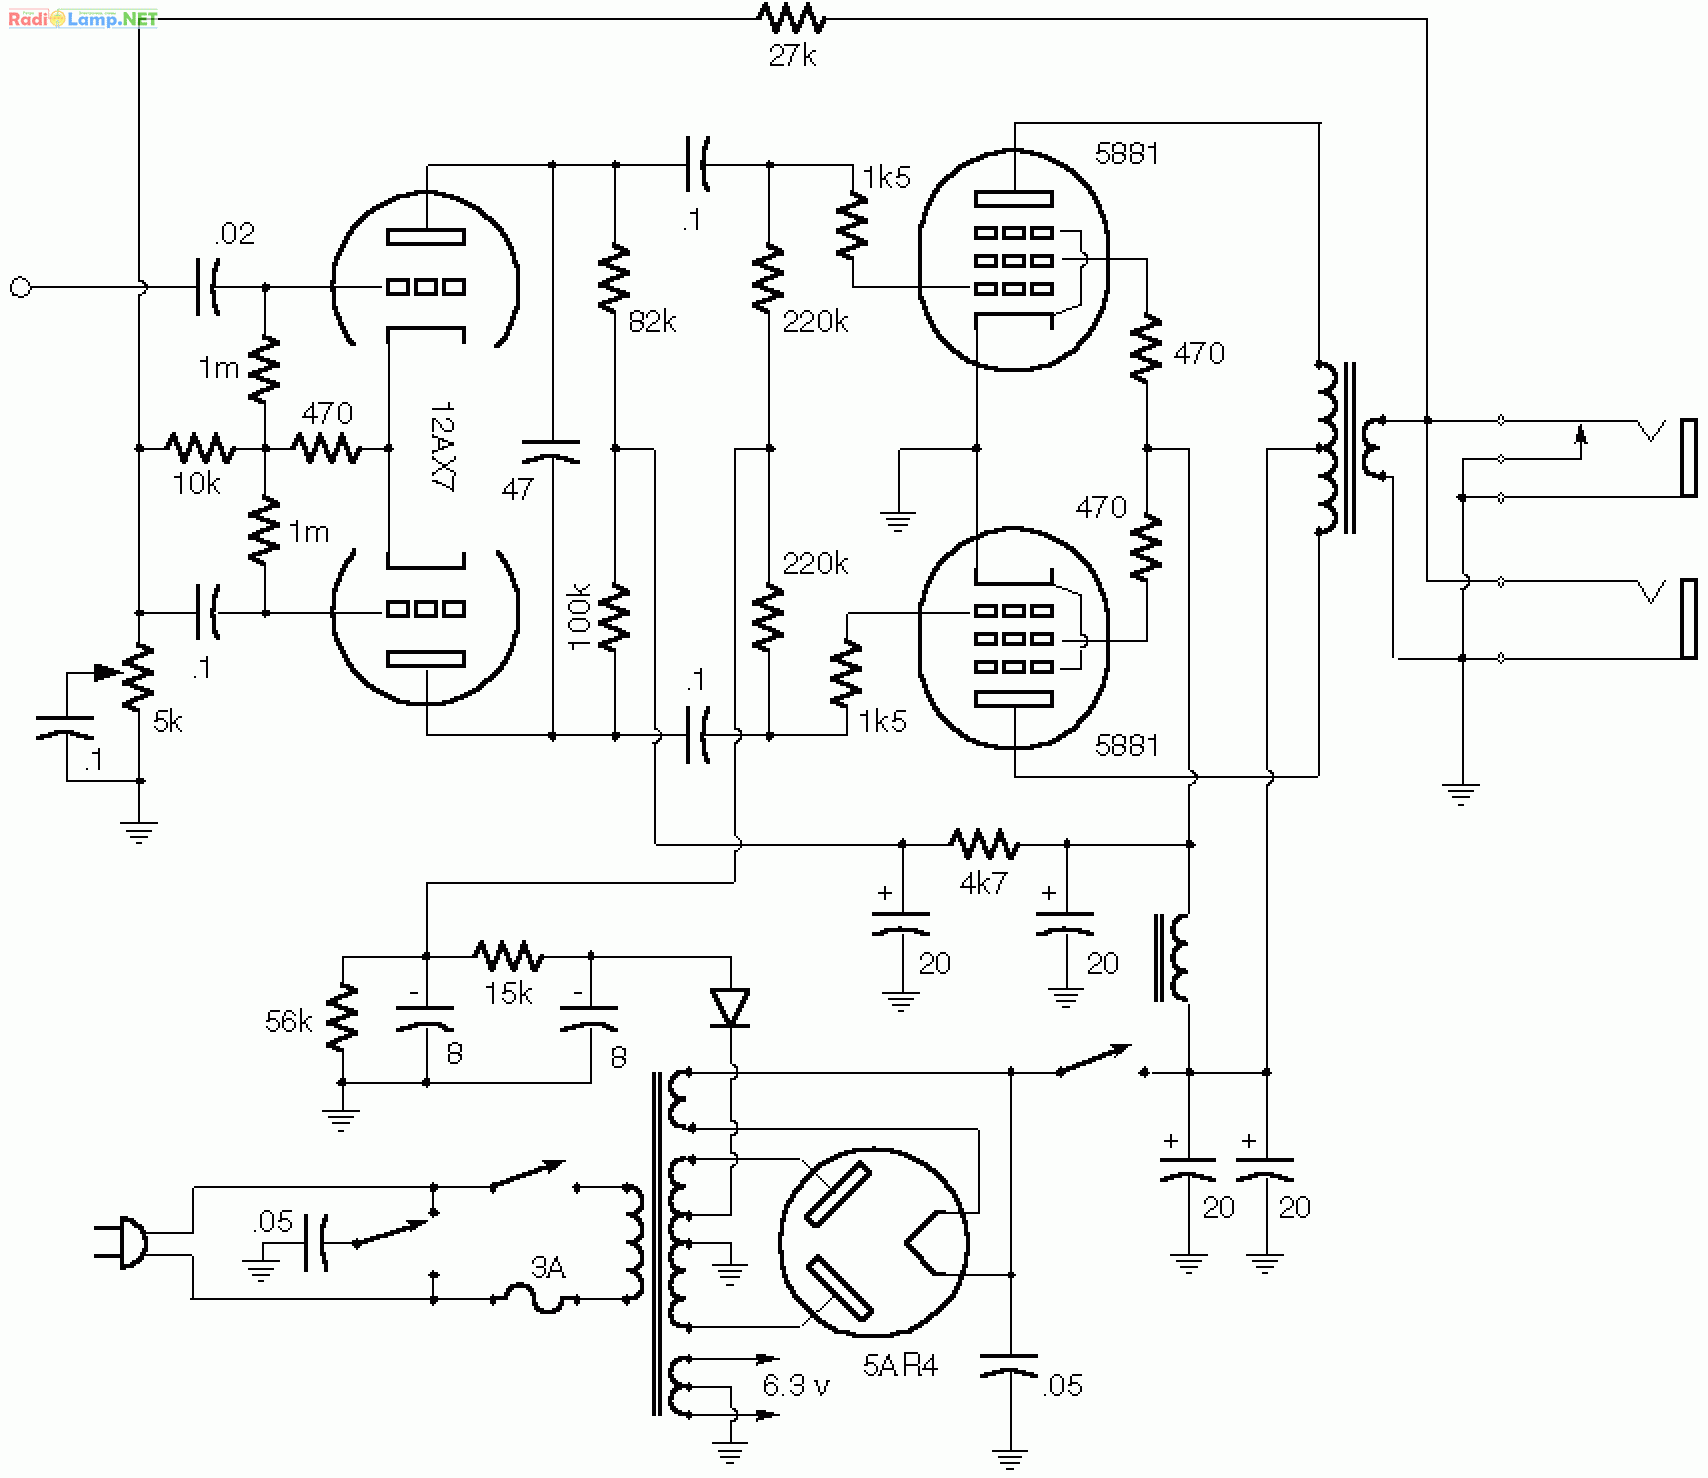 Bandmaster Schematic – Jerusalem House on peavey reverb schematic, piping and instrumentation diagram, champ schematic, 5e3 schematic, twin reverb schematic, one-line diagram, technical drawing, functional flow block diagram, tube map, bassman schematic, circuit diagram, super reverb schematic, block diagram,